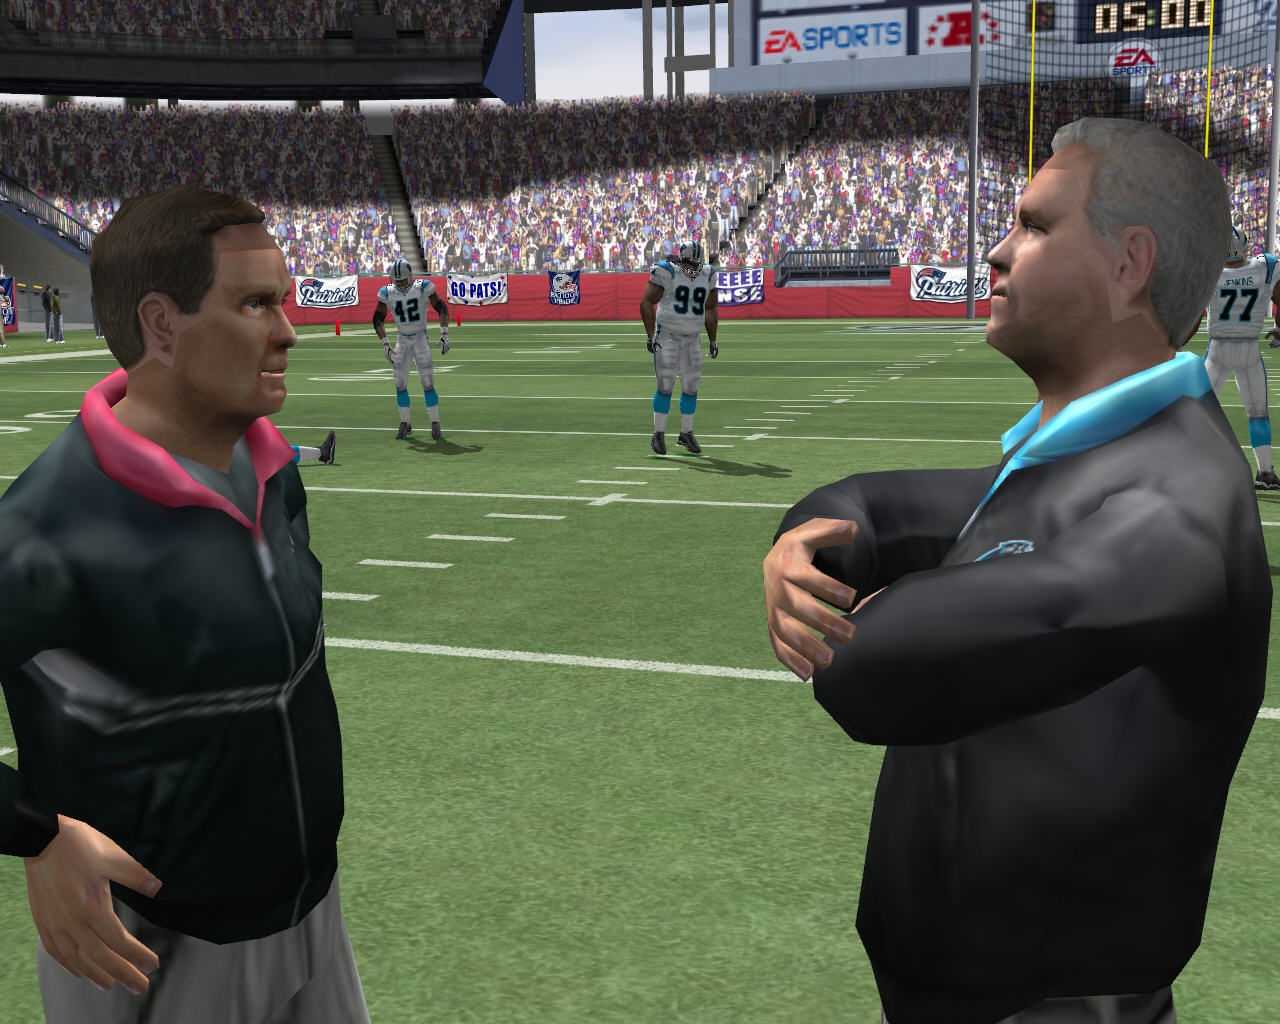 Madden NFL 2005 Windows Coaches talking.